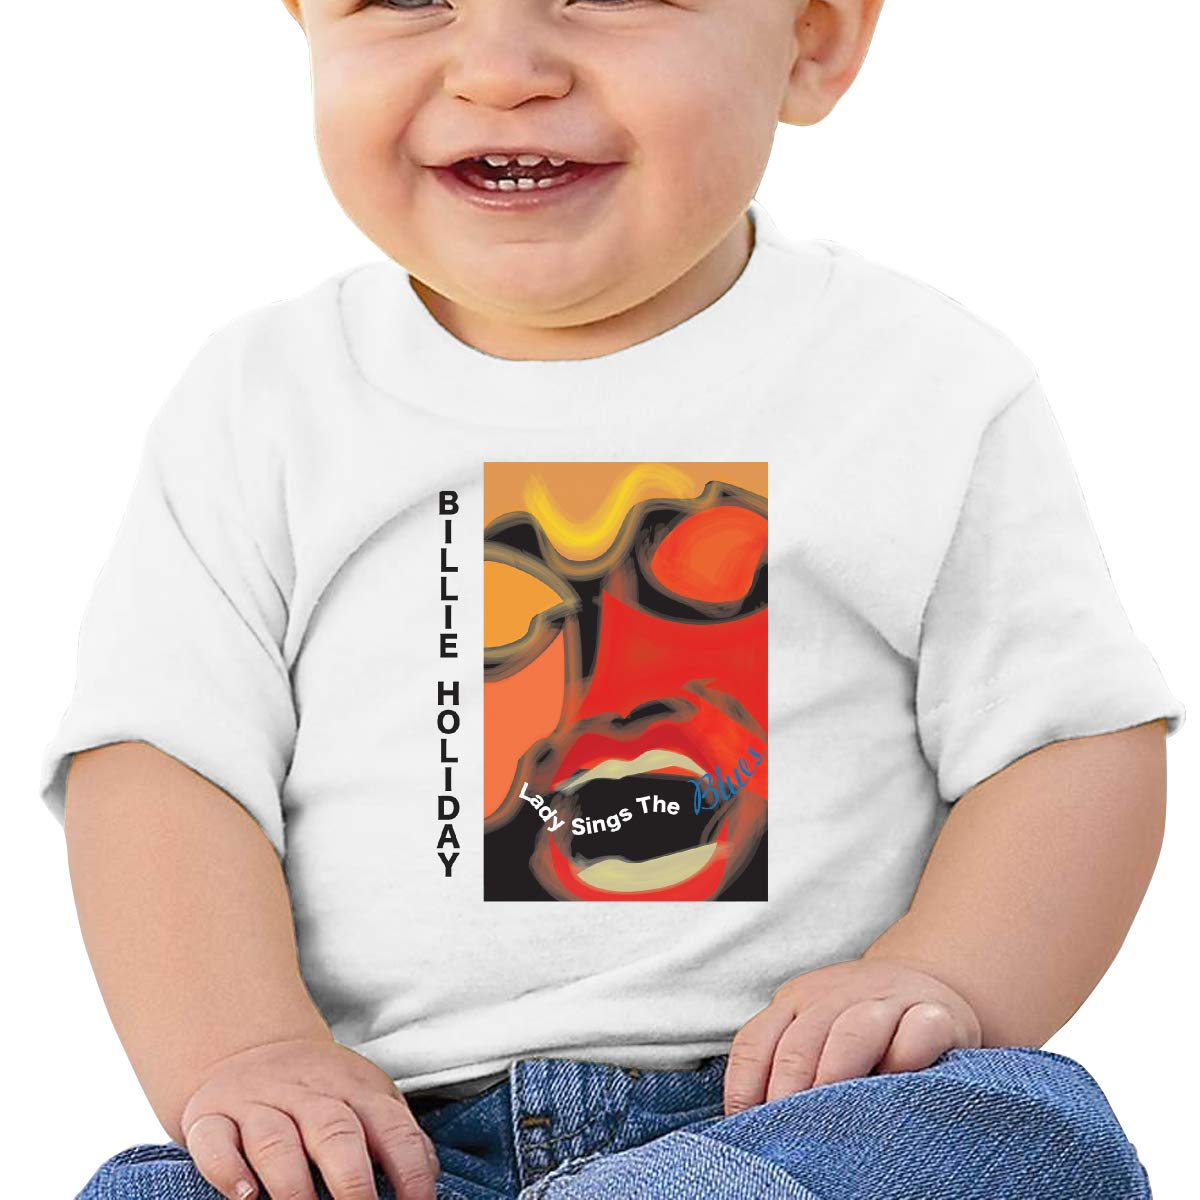 Kangtians Baby Billie Holiday Lady Sings The Blues Shirt Toddler Cotton Tee